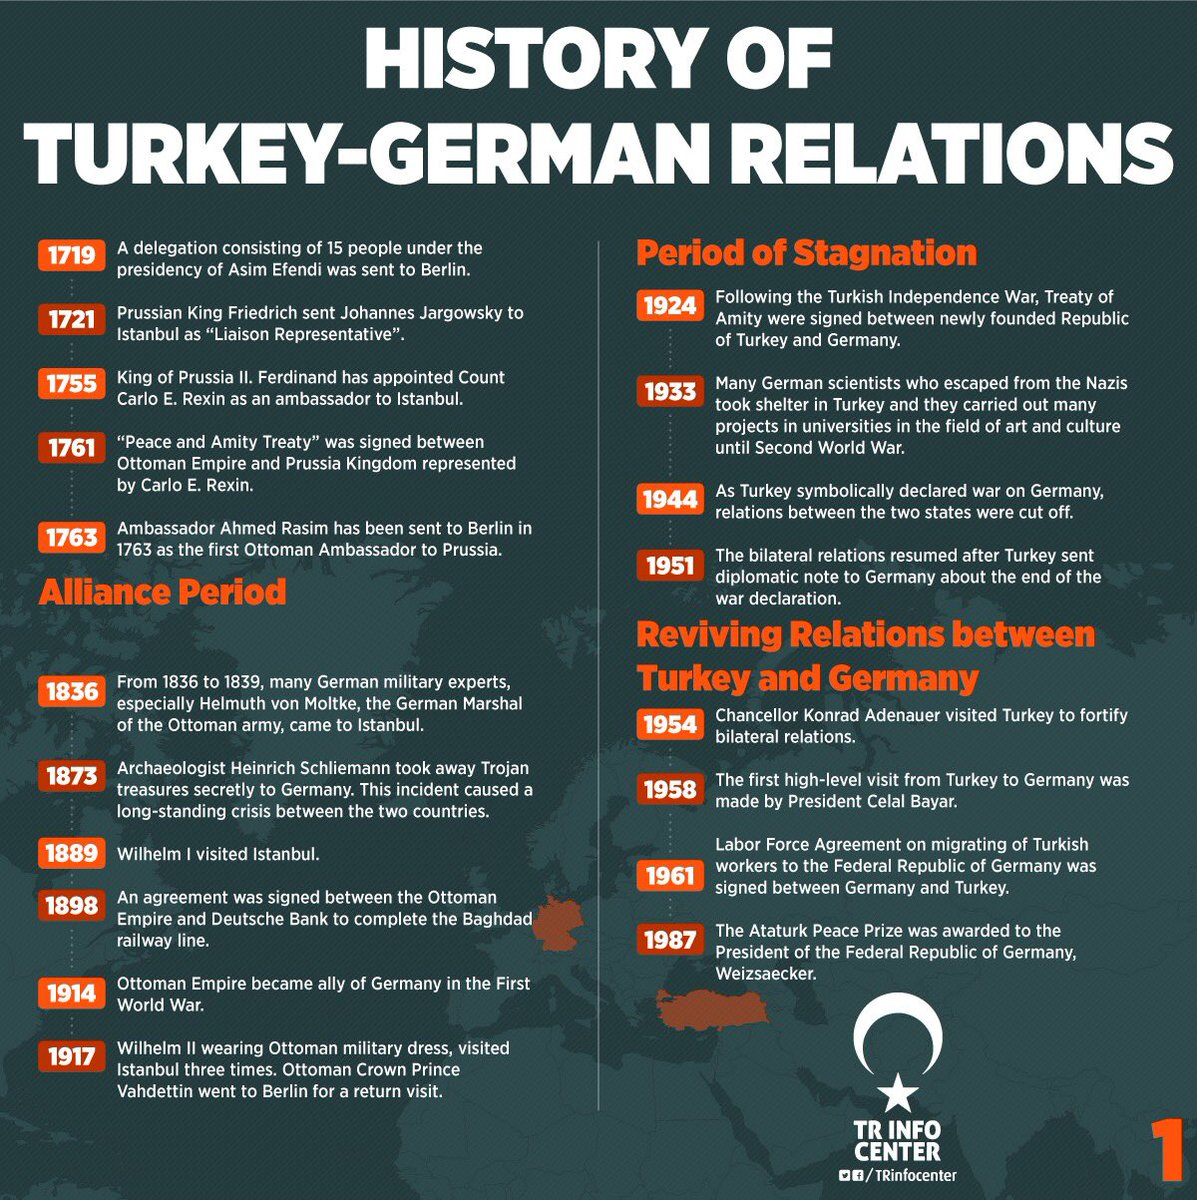 The History of Turkey - Germany Relations